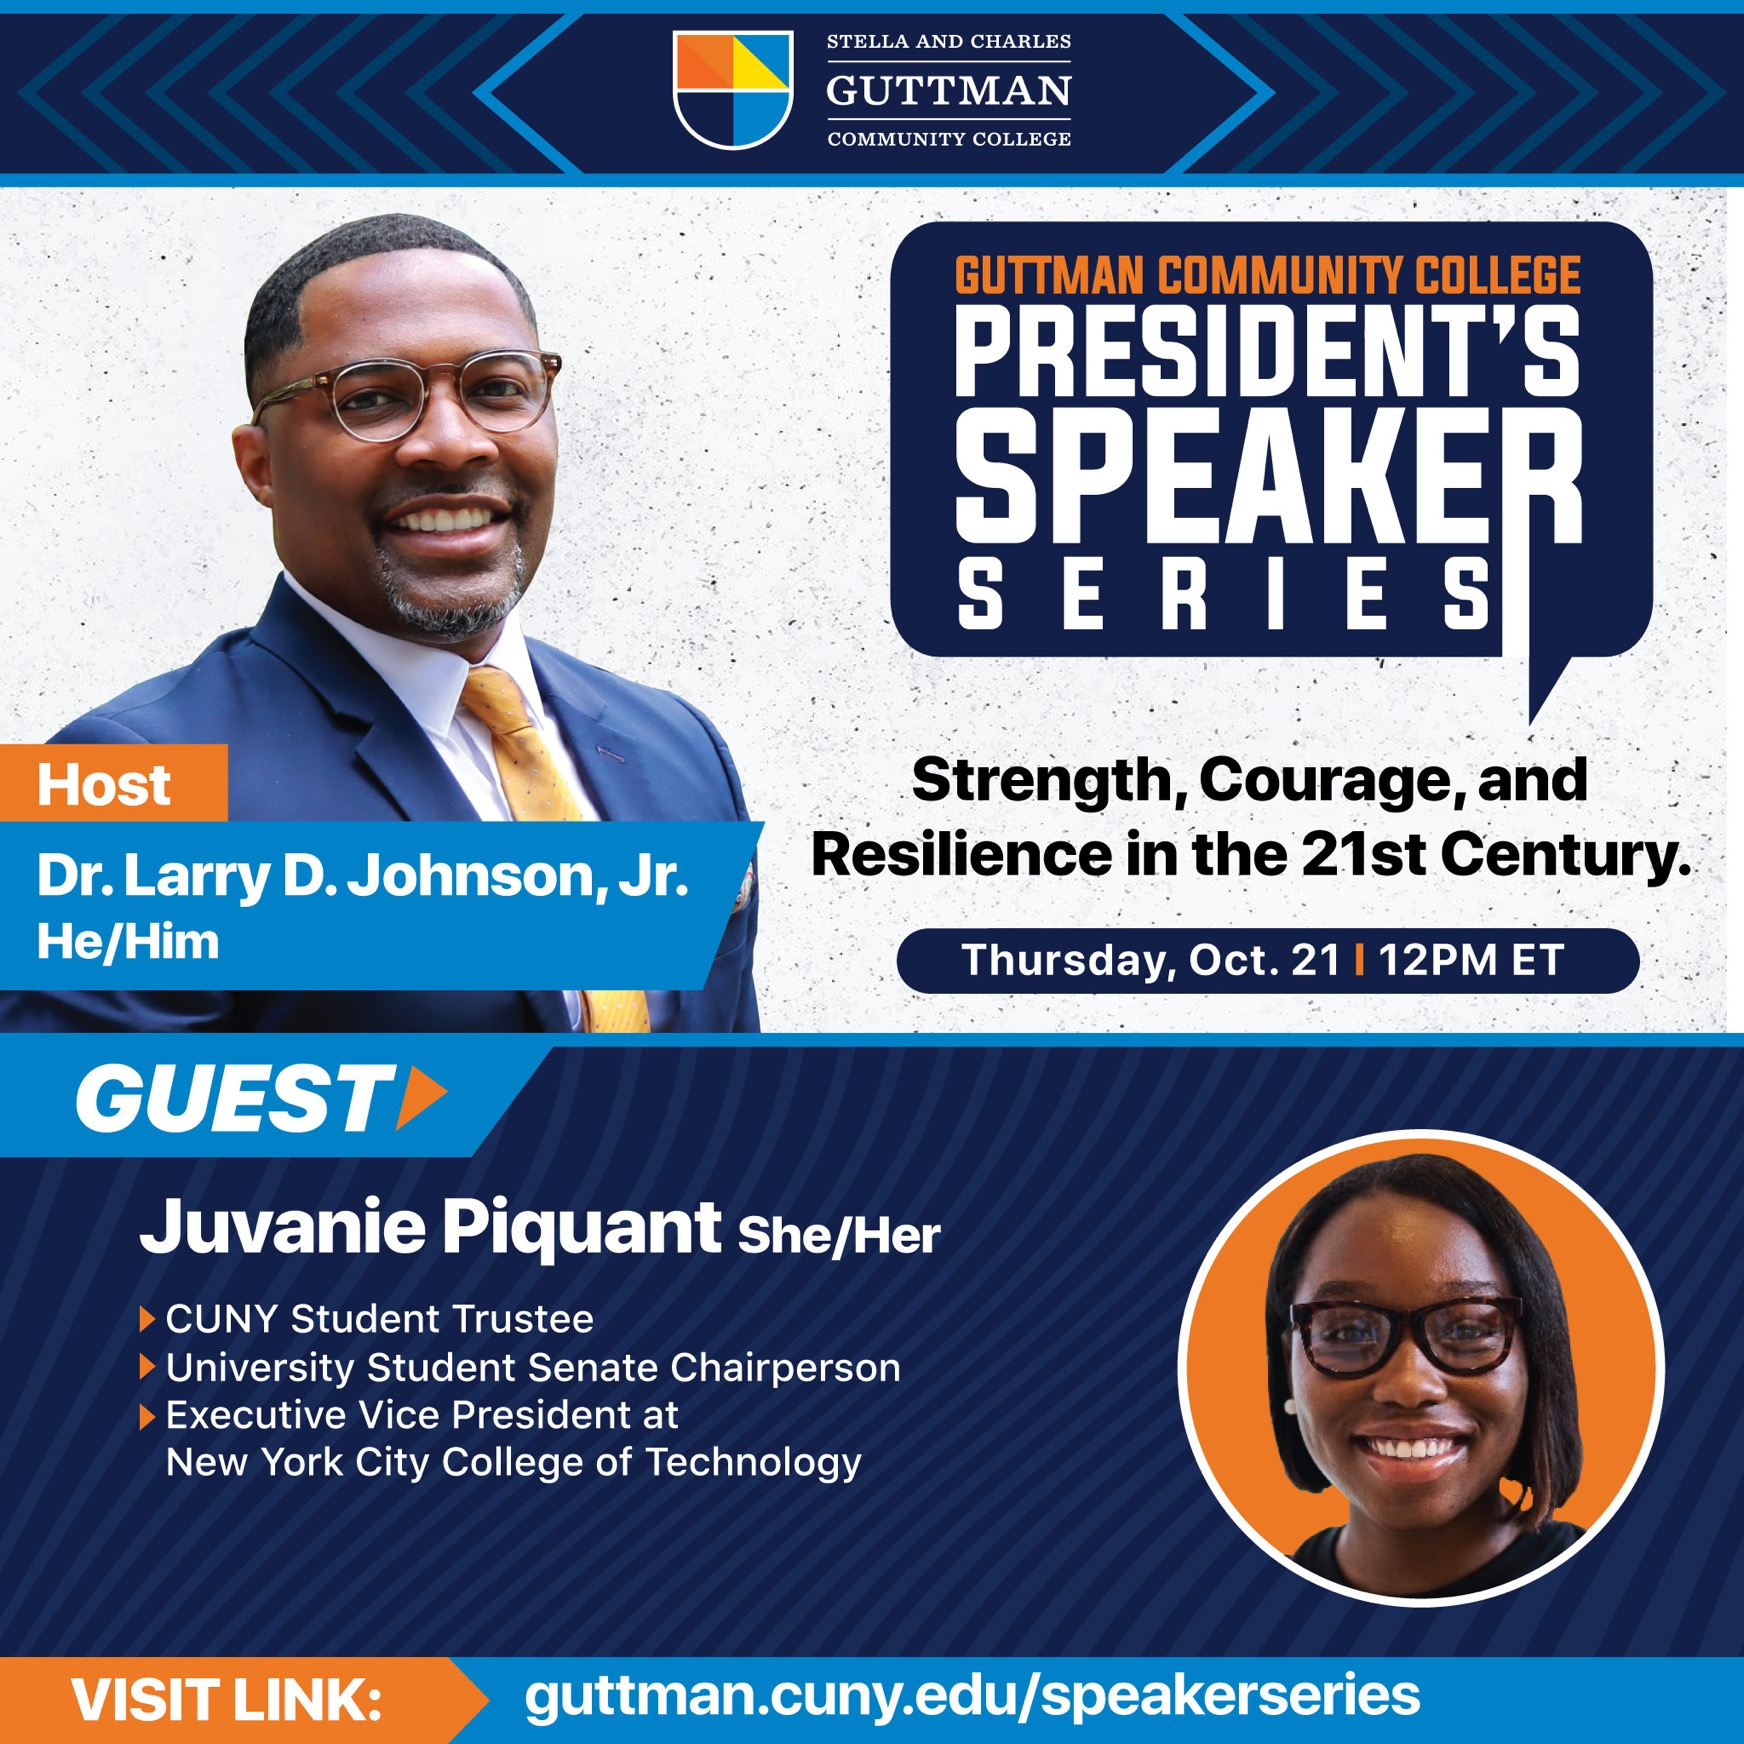 President's Speaker Series - Oct 21 at noon - with guest JUvanie Piquant. Go to guttman.cuny.edu/speakerseries for details and to rsvp